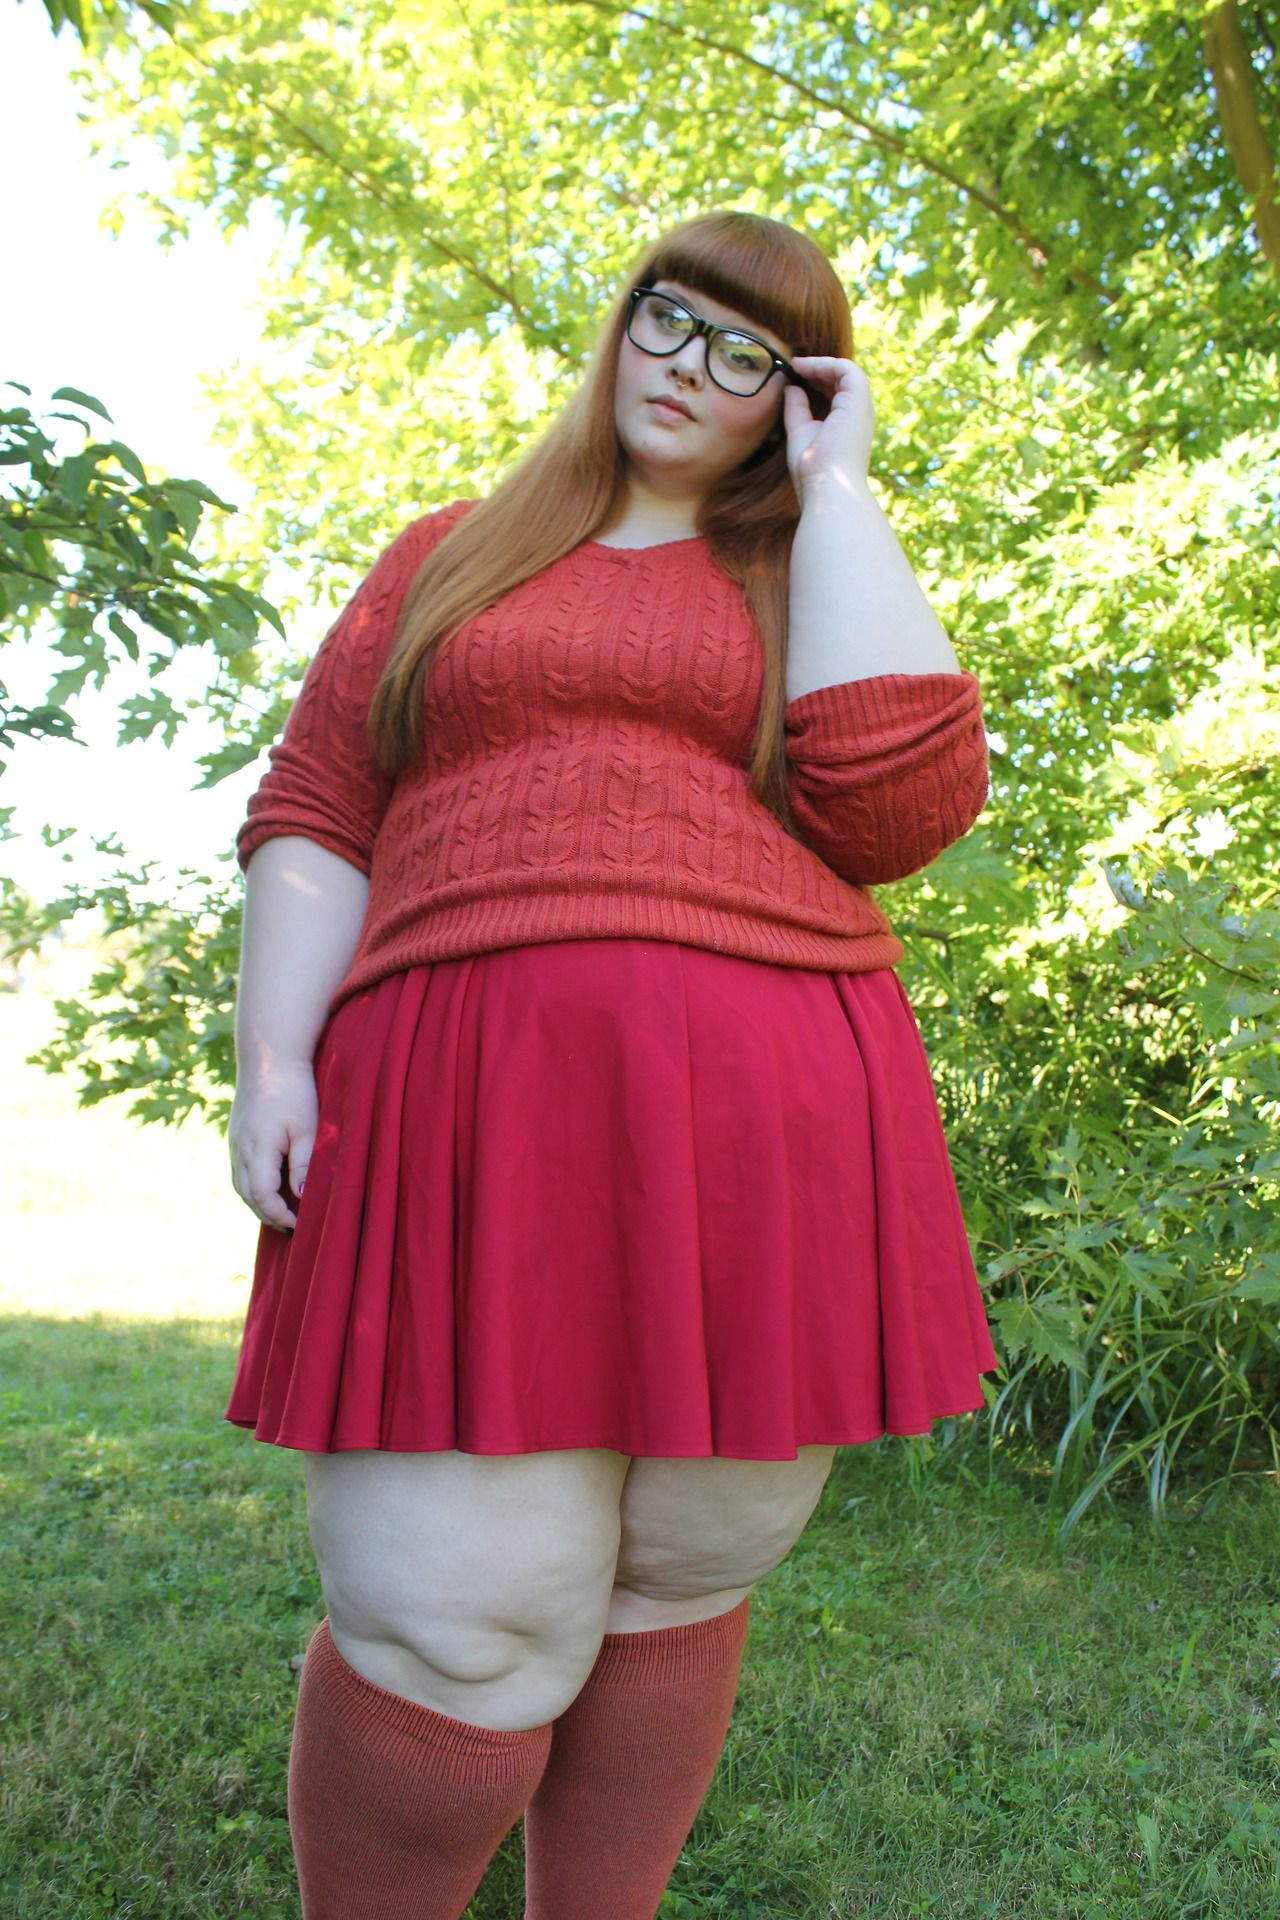 starrucca bbw dating site Join bbw admire today, the free bbw dating site allowing larger women and their admirers to meet and connect meet bbw singles in your area with unlimted messages and our free bbw dating forum and chat room.